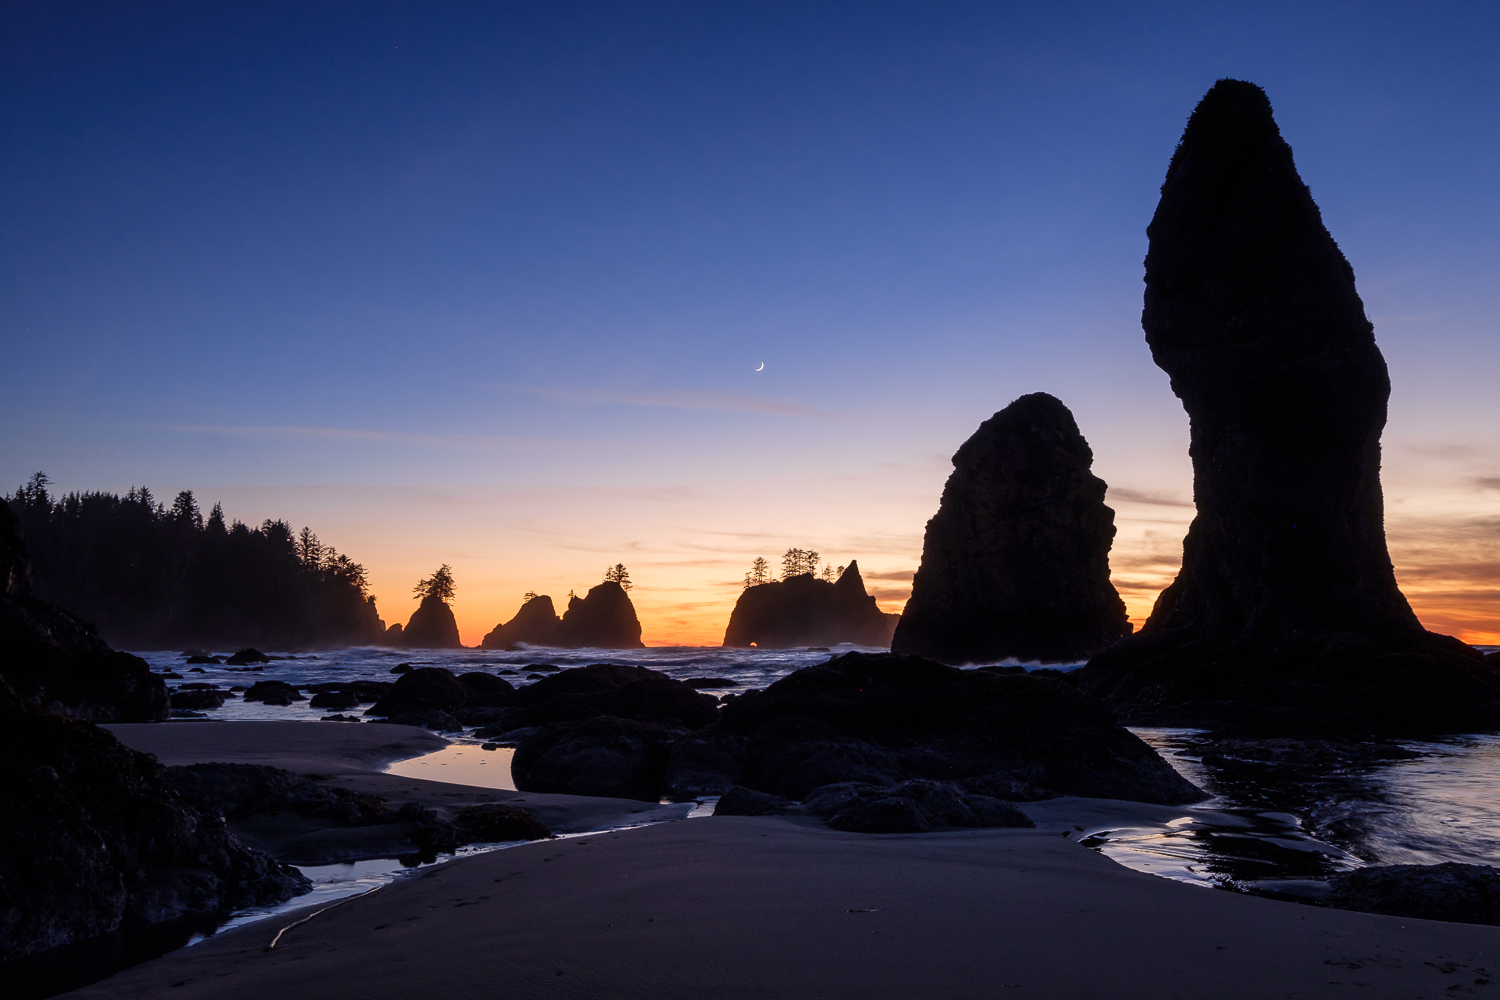 A crecent moon rises over seastacks at Point of the Arches, Olympic National Park, WA.